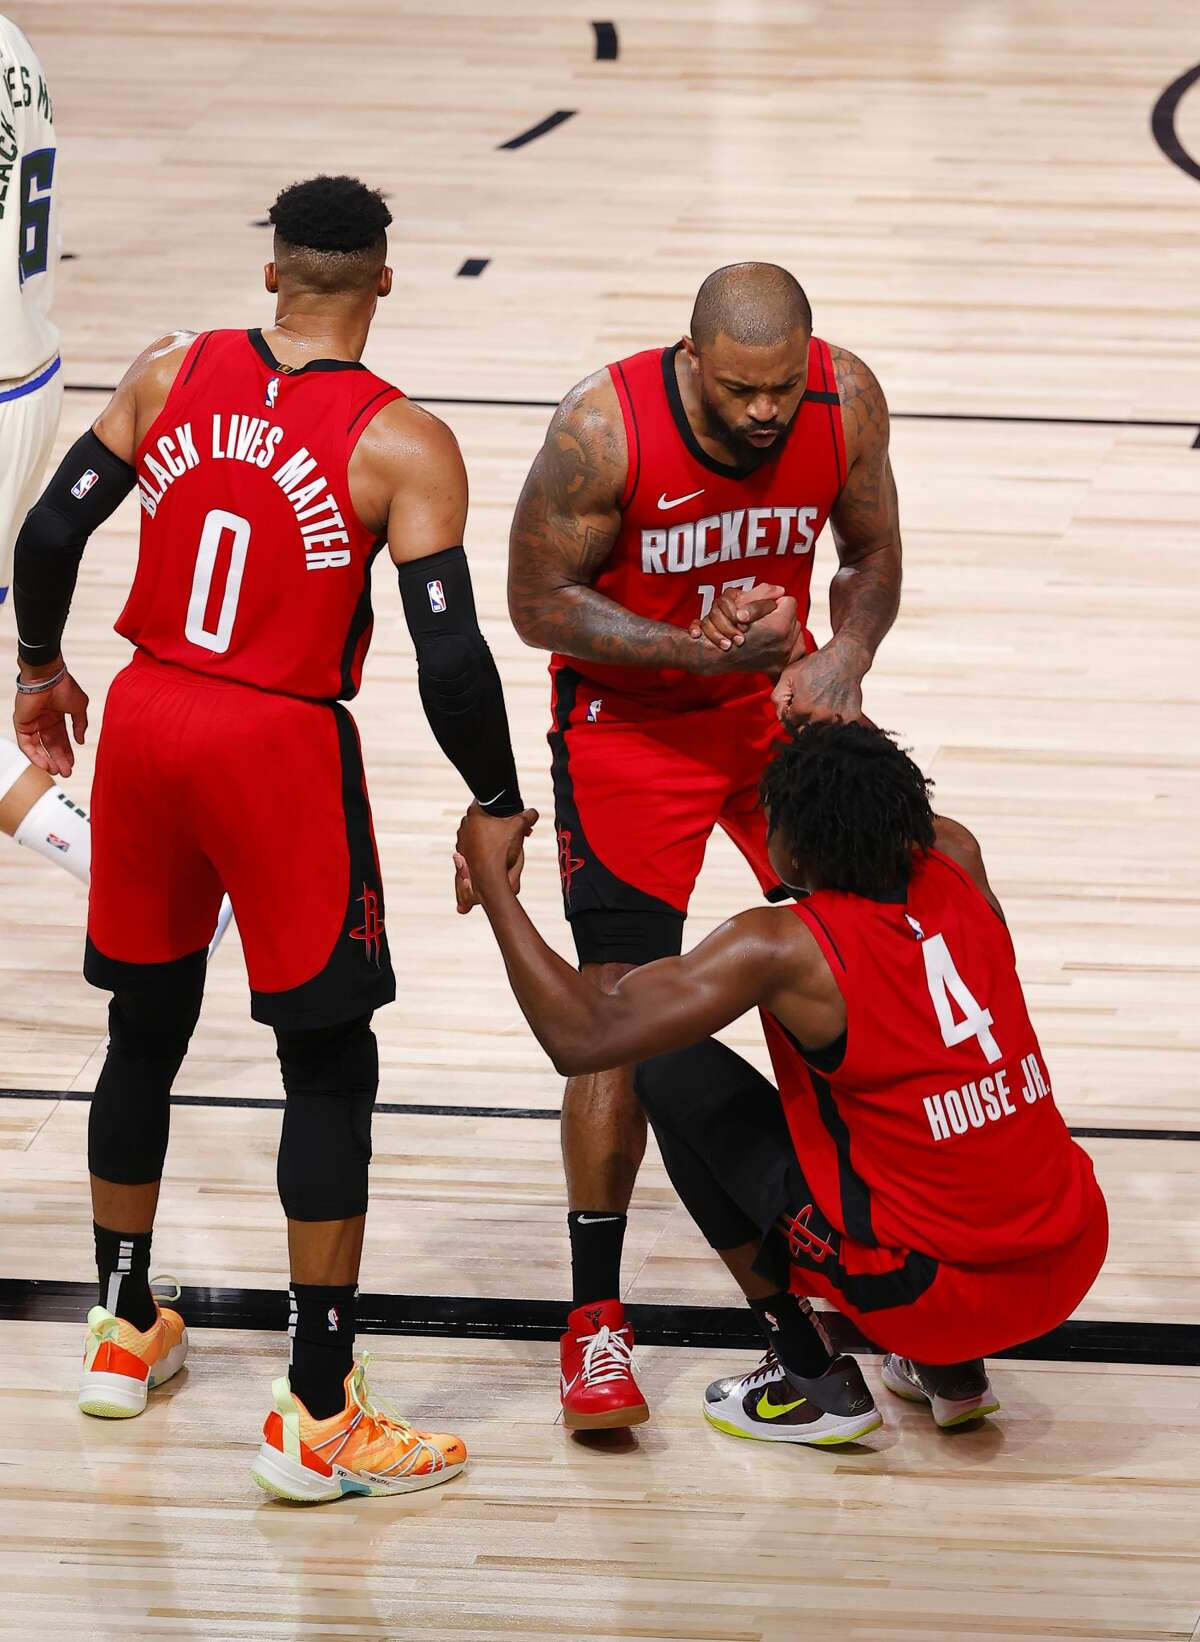 Houston Rockets' Danuel House Jr. (4) is helped up by teammates Russell Westbrook, left, and P.J. Tucker during the team's NBA basketball game against the Milwaukee Bucks on Sunday, Aug. 2, 2020, in Lake Buena Vista, Fla. (Mike Ehrmann/Pool Photo via AP)